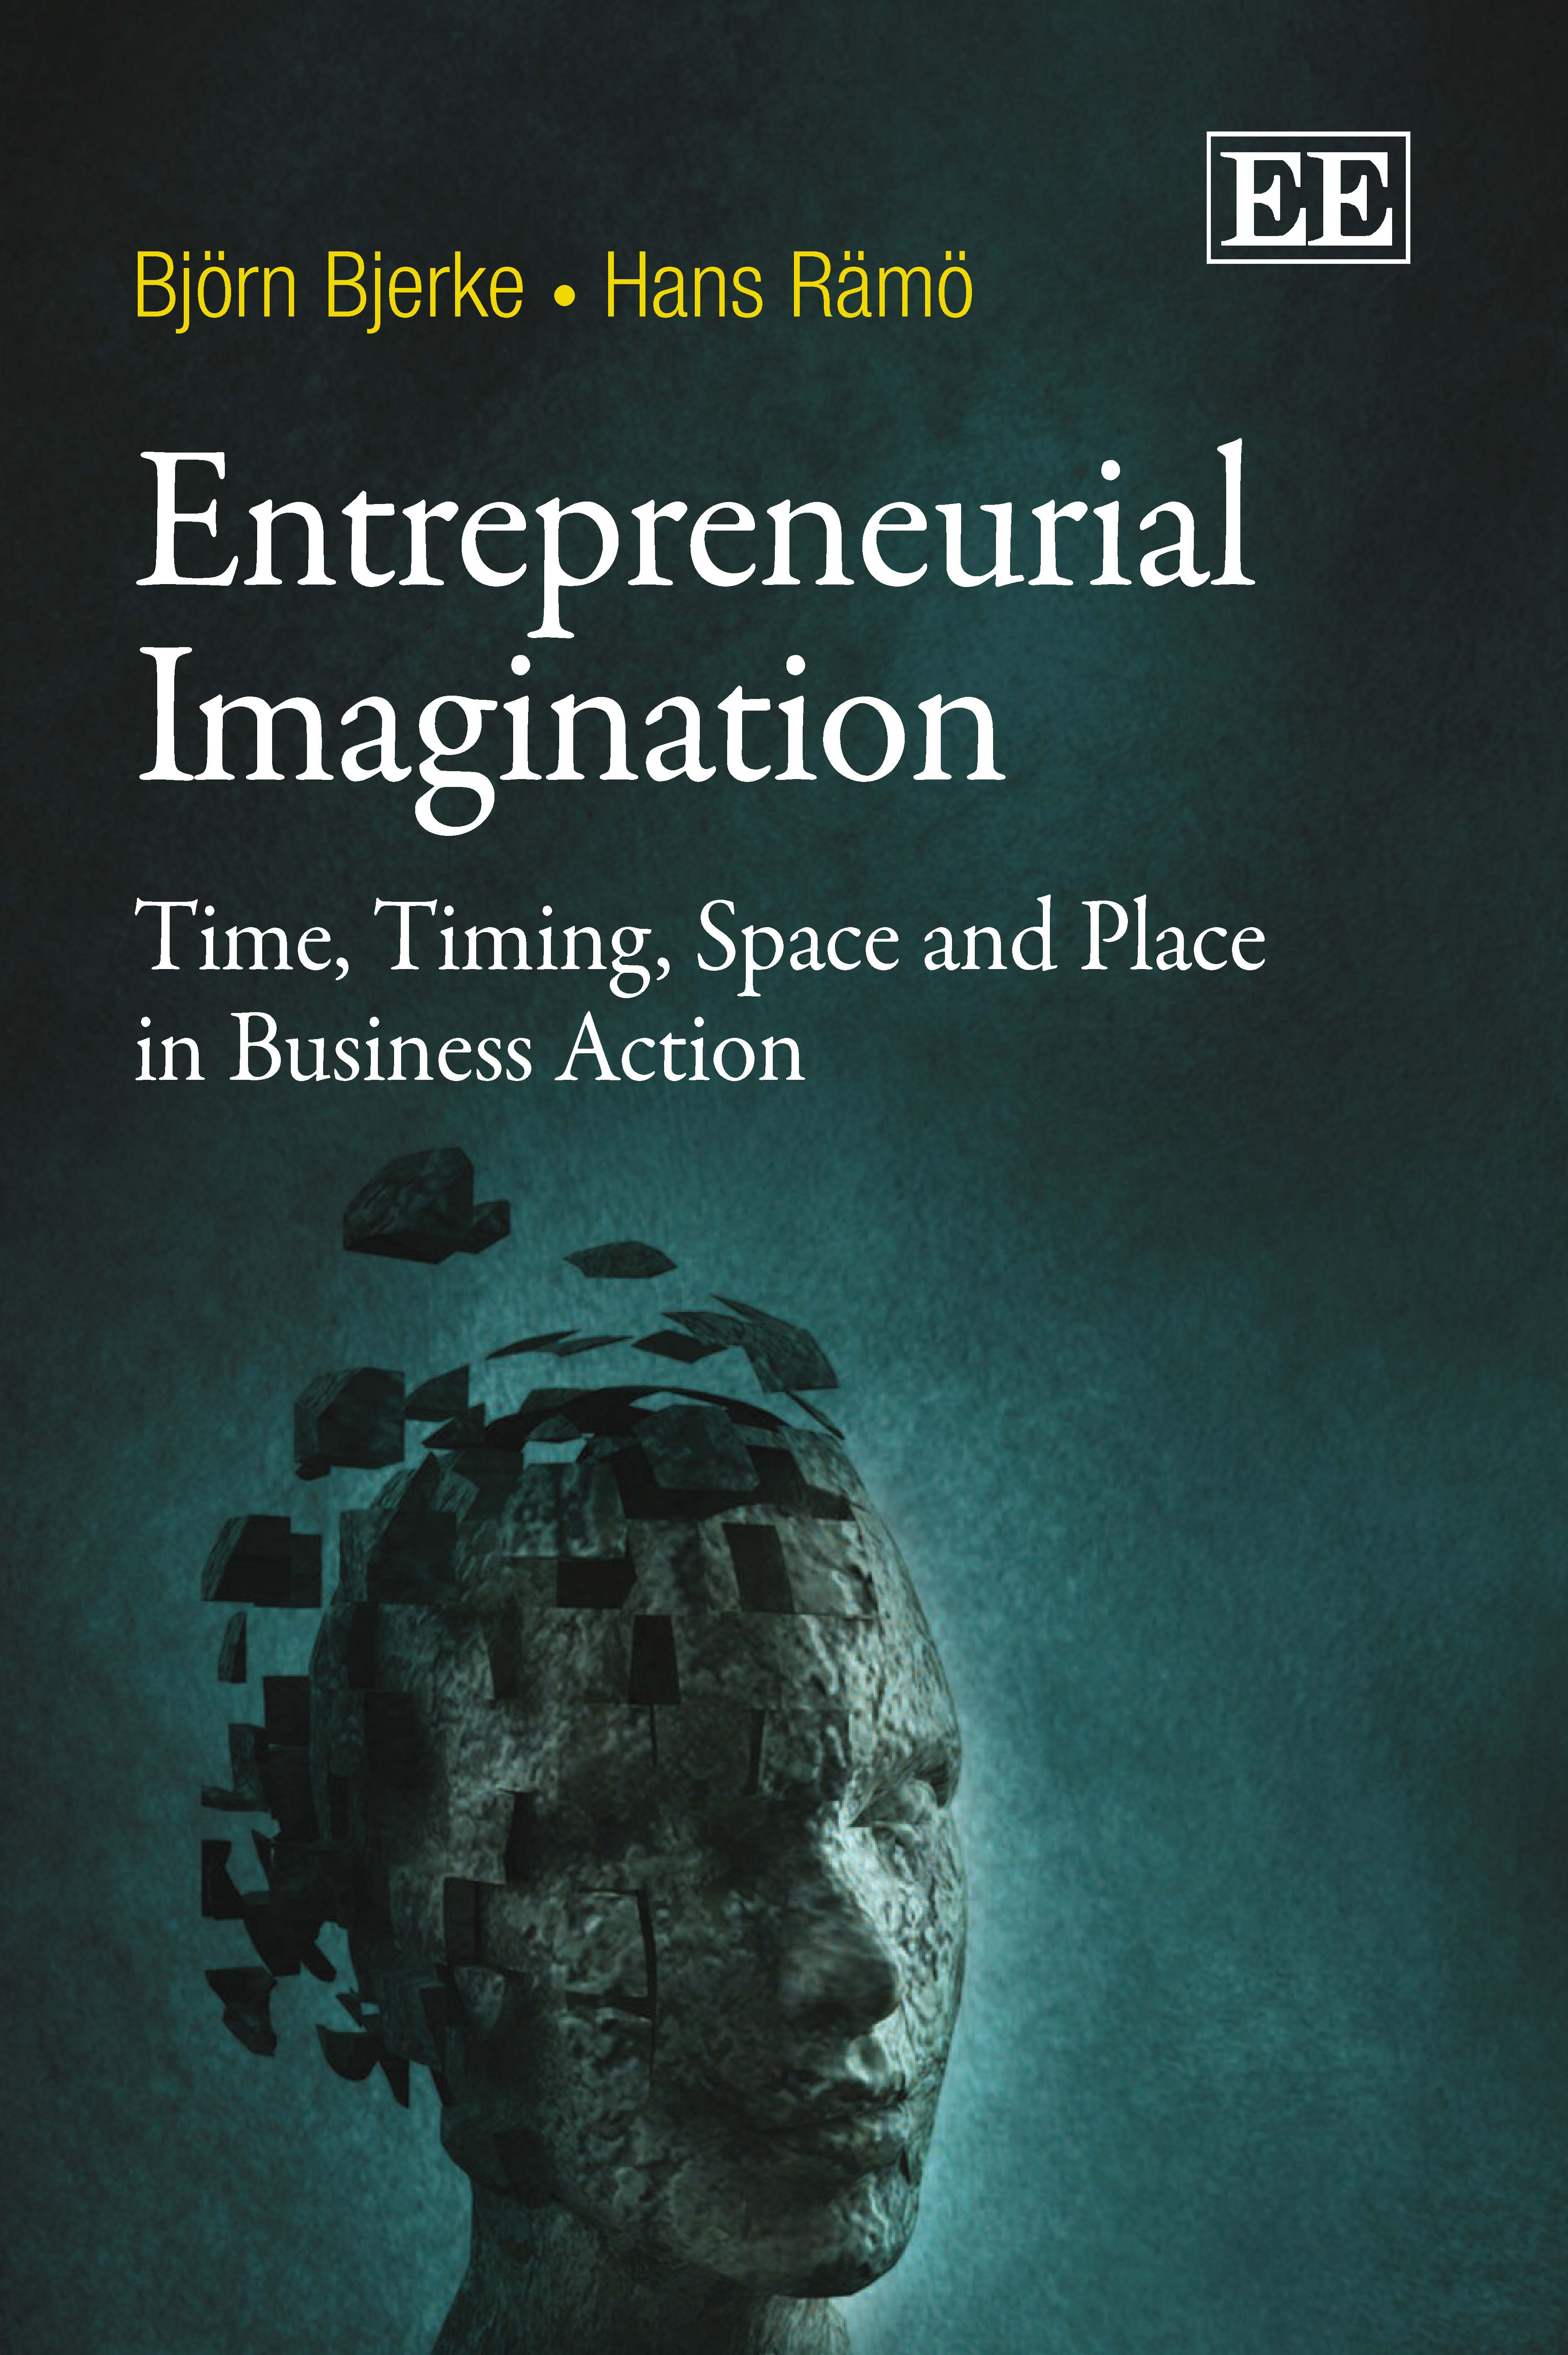 Entrepreneurial Imagination